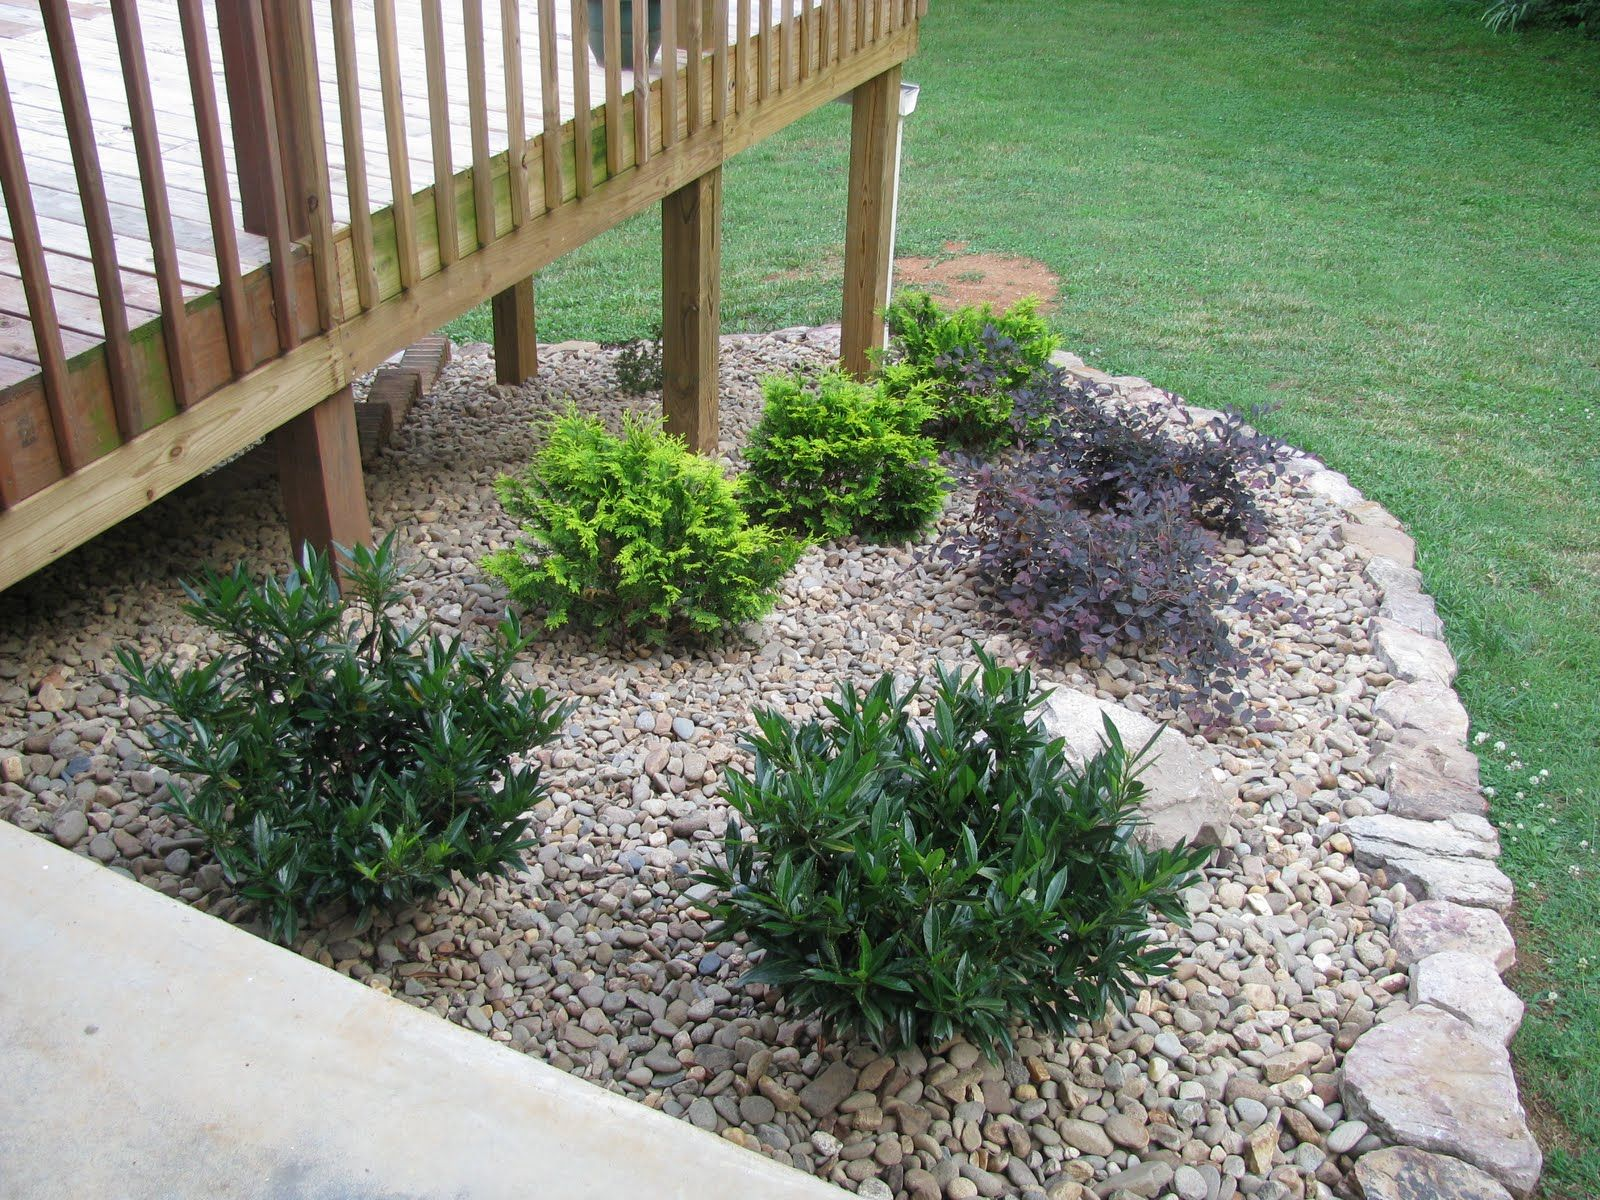 Landscaping around a deck lightsonthelake rock garden for Garden decking design ideas